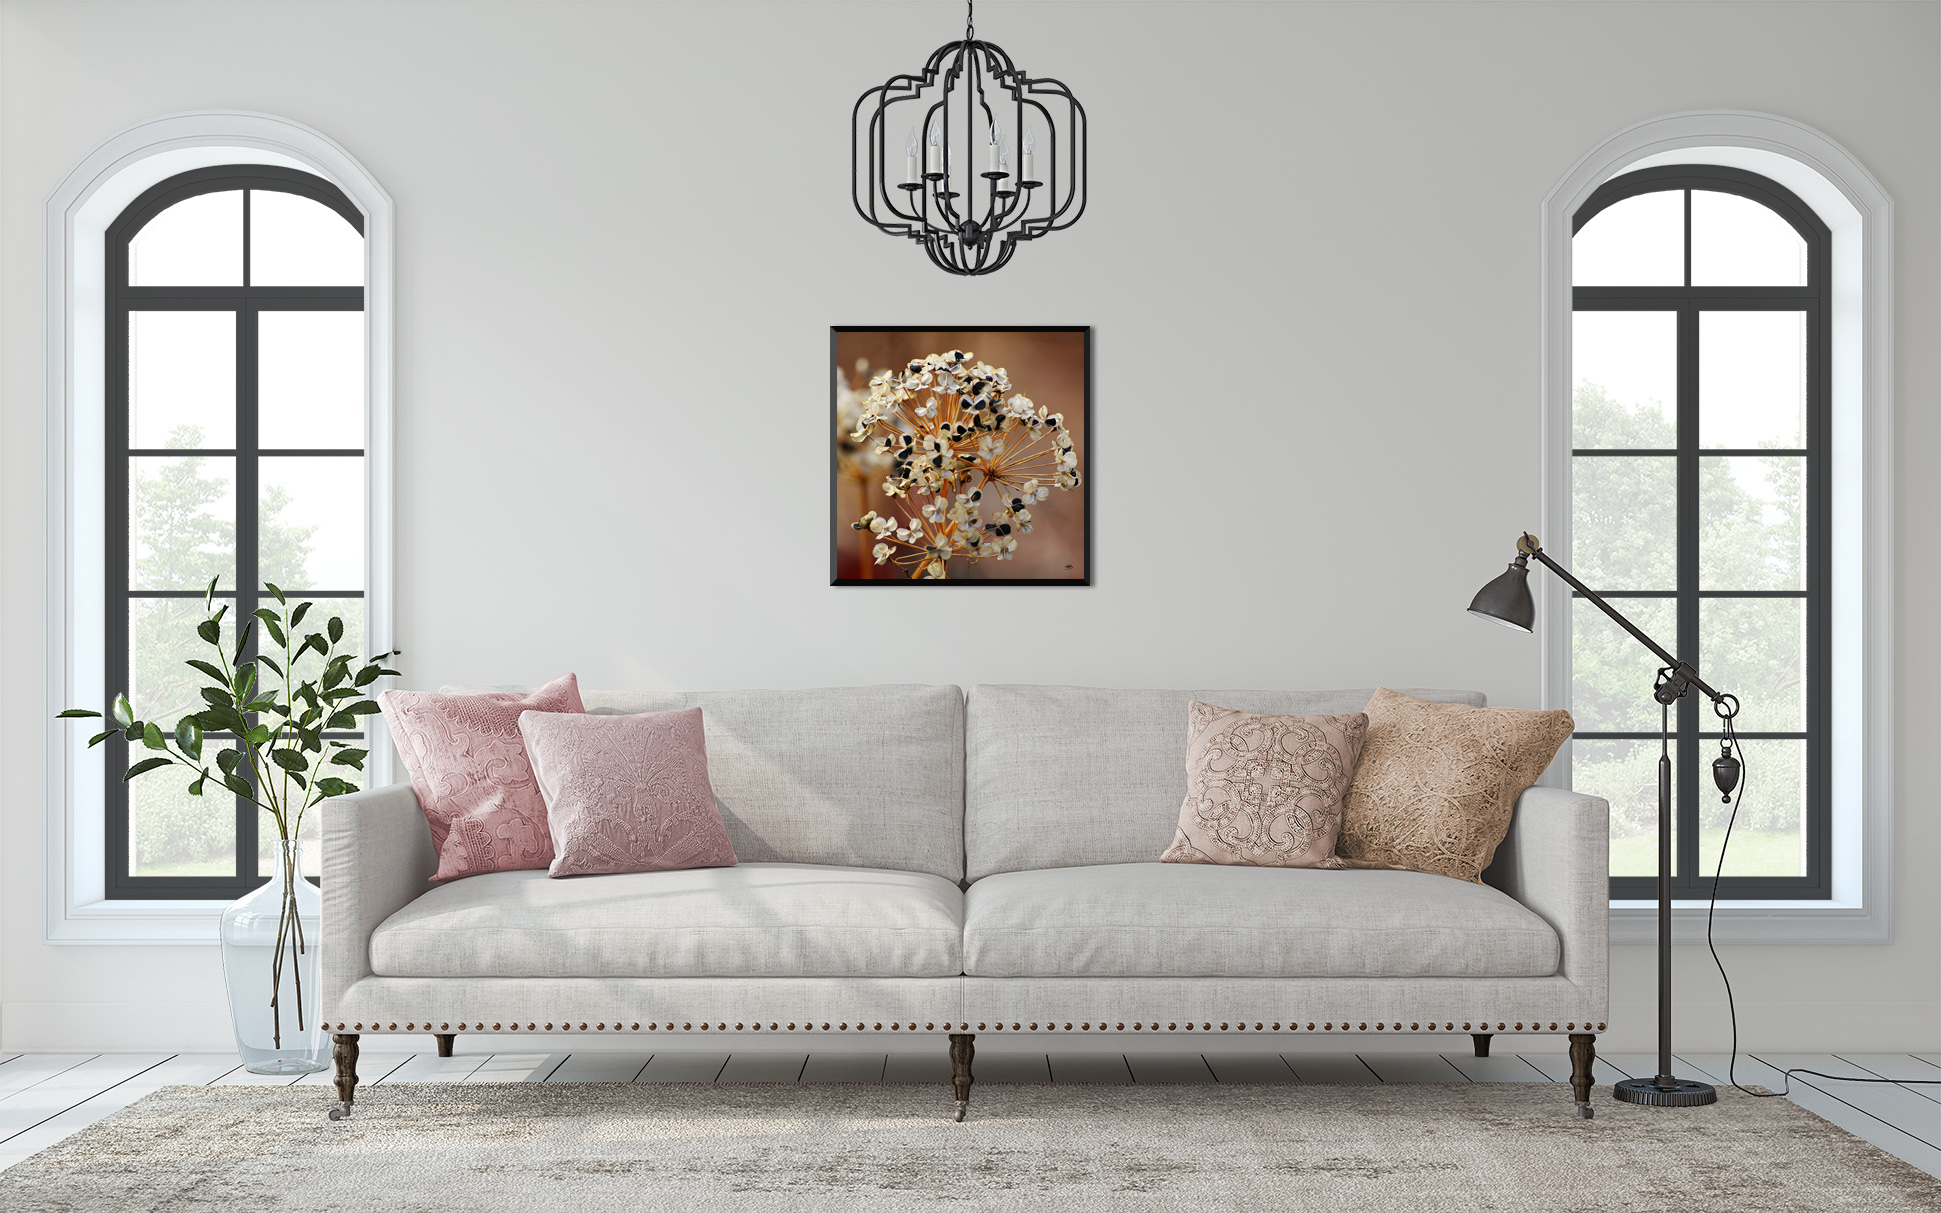 Fine Art Print, Chives Seed Flower Head, Artist Tonya M. Brill, Photographer, Time Made Beautiful, Sizes available: 10x10 inch, 20x20 inch, 30x30 inch, and 40x40 inch on Hahnemuhle Torchon Fine art Paper.